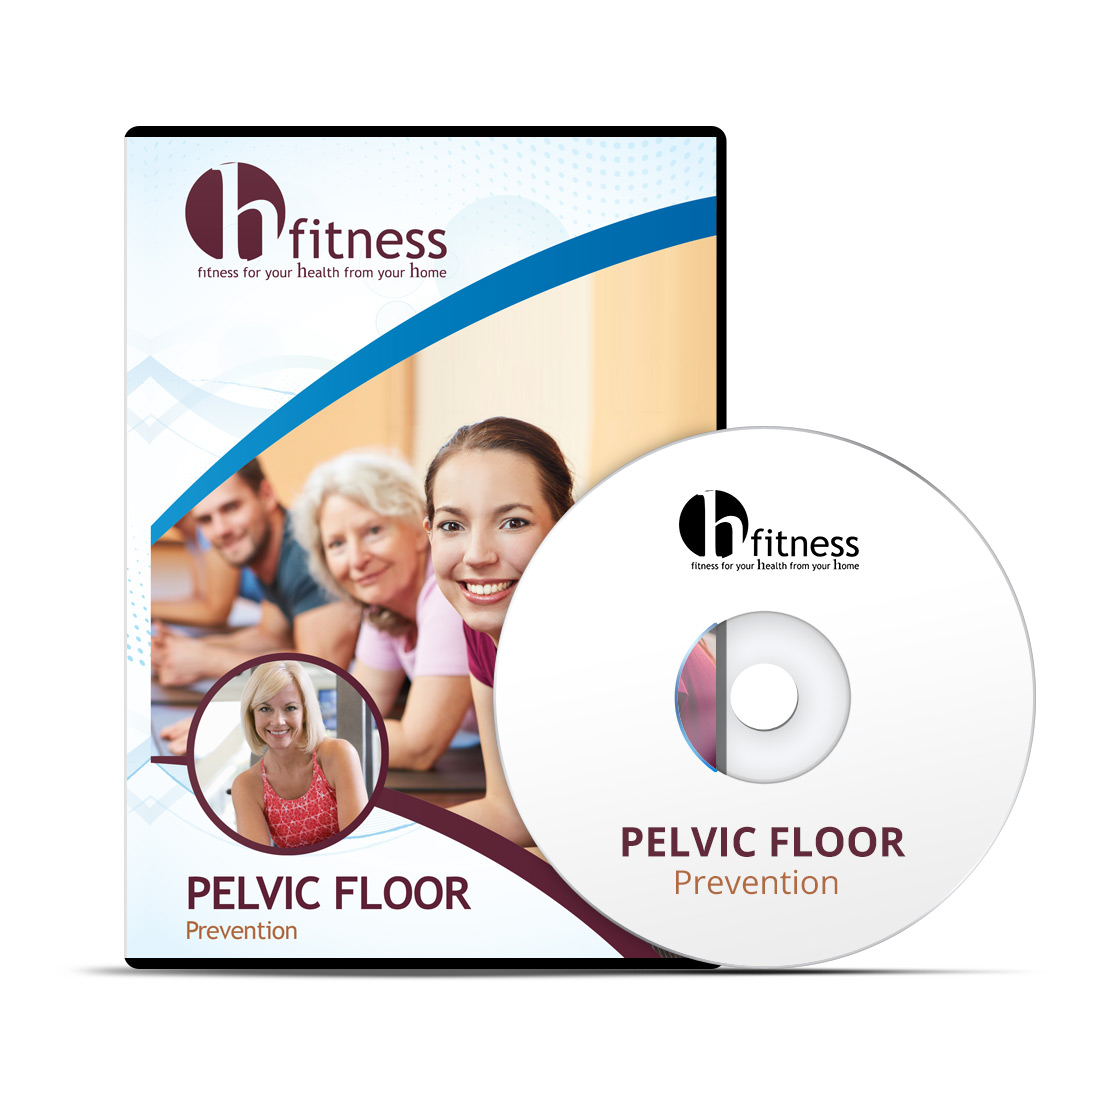 Fitness Dvd For Very Unfit: Hfitness 60